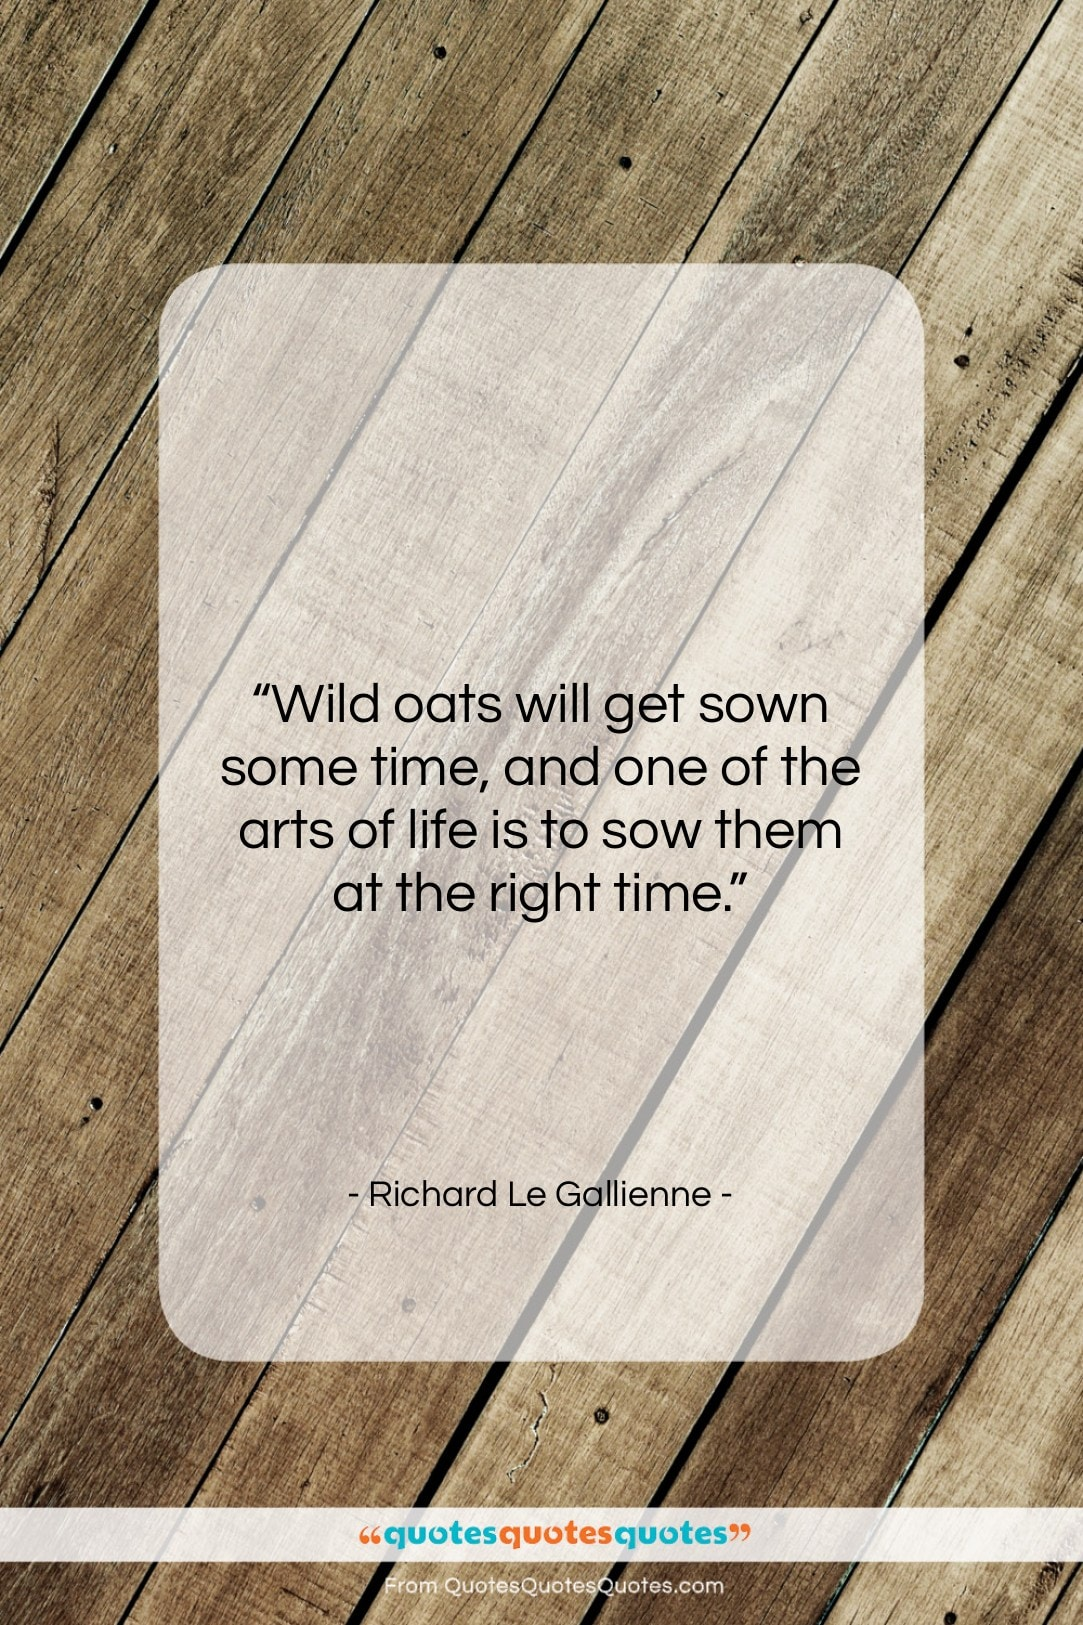 """Richard Le Gallienne quote: """"Wild oats will get sown some time,…""""- at QuotesQuotesQuotes.com"""